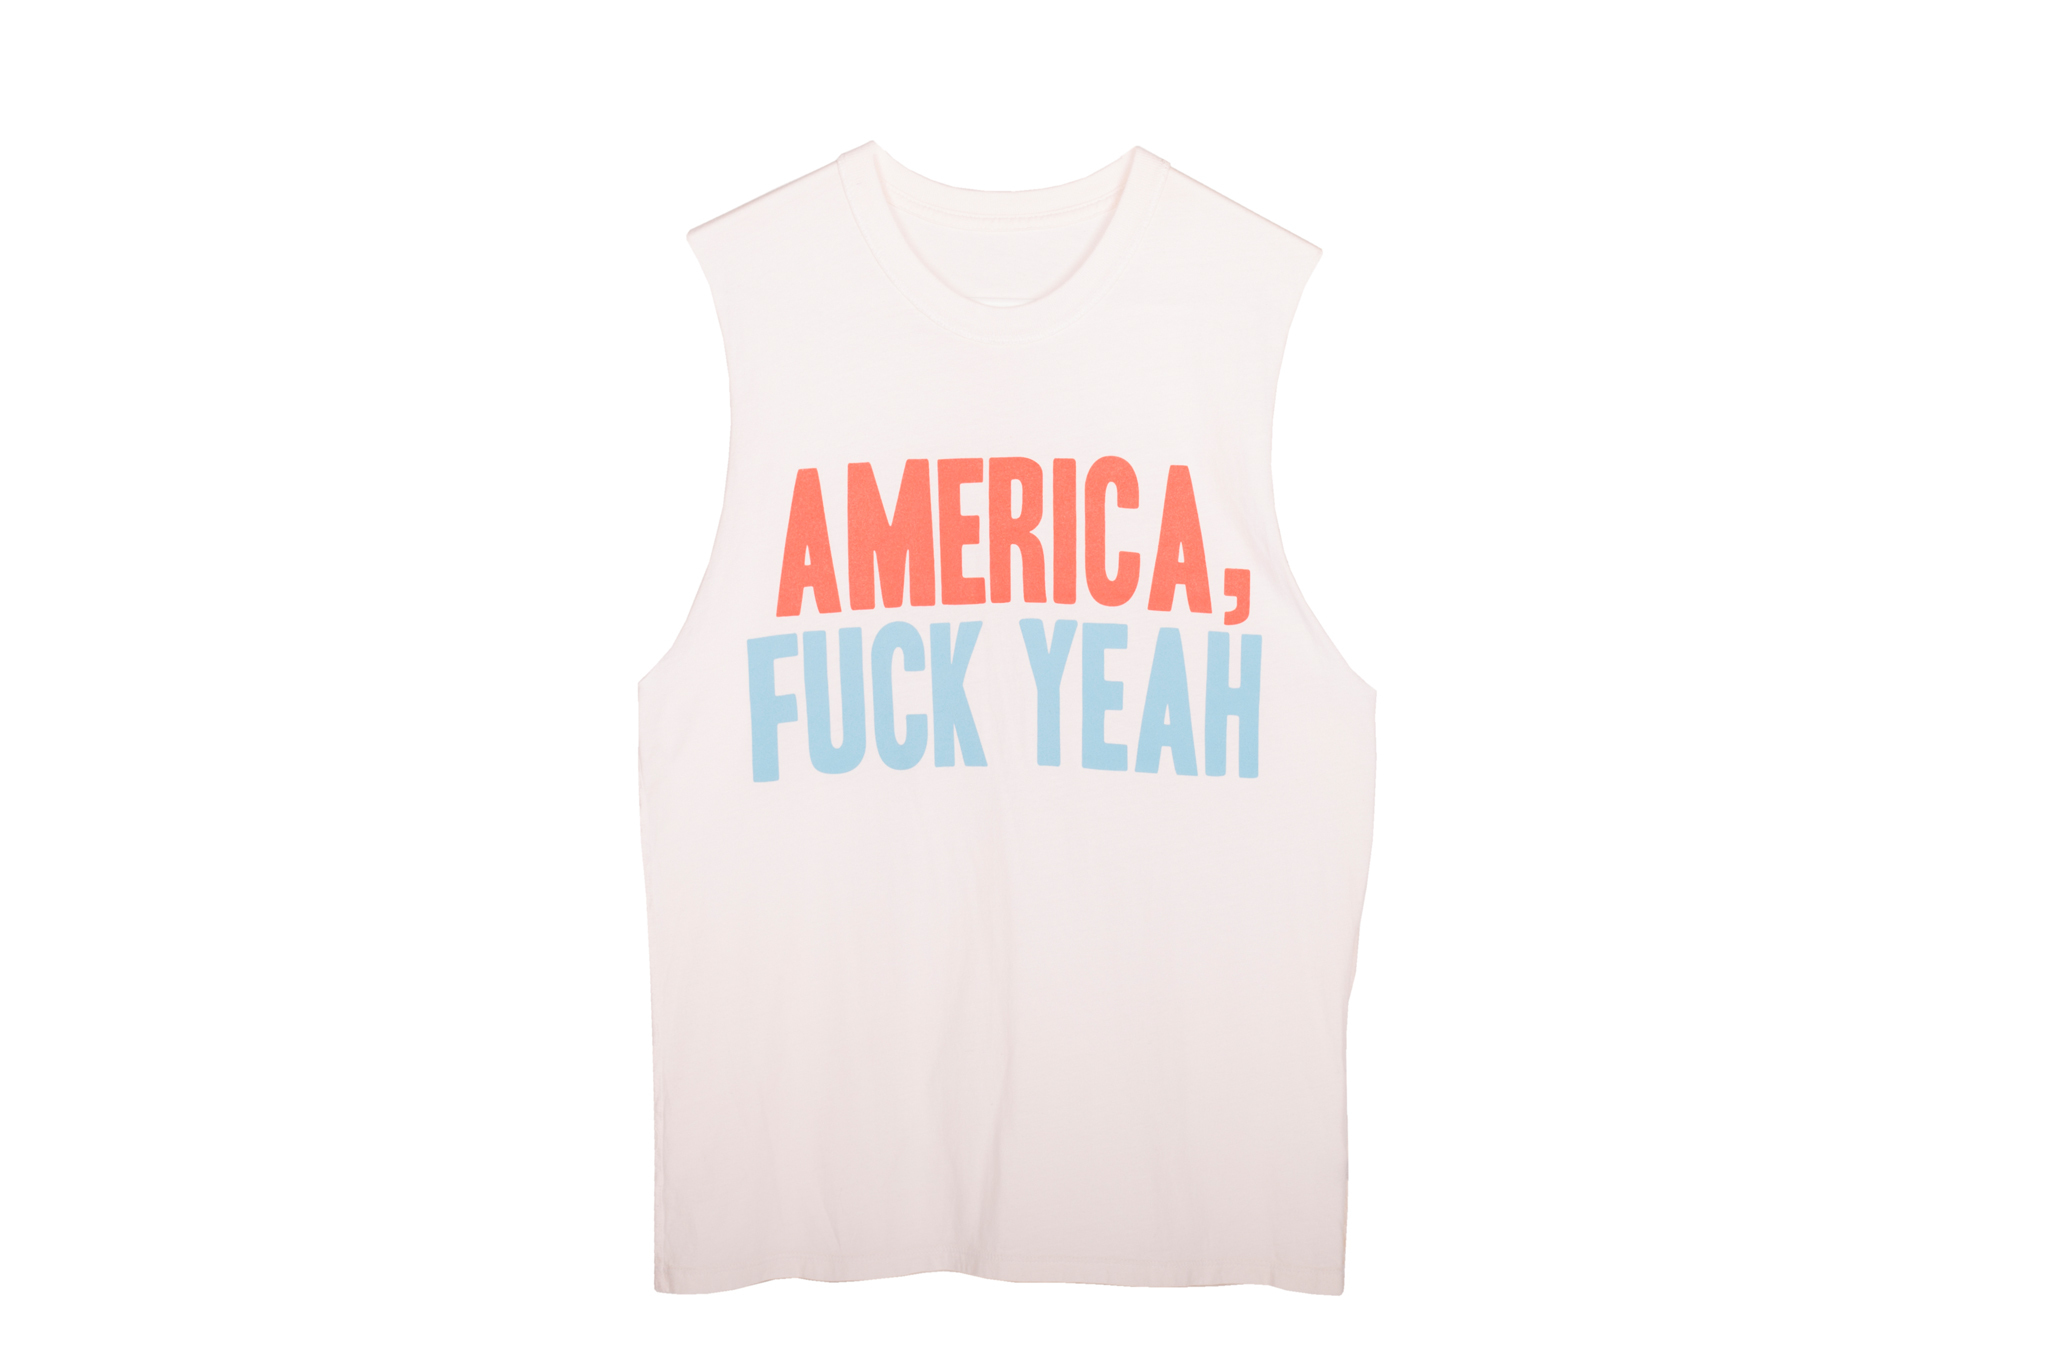 The tackiest American flag clothing and accessories